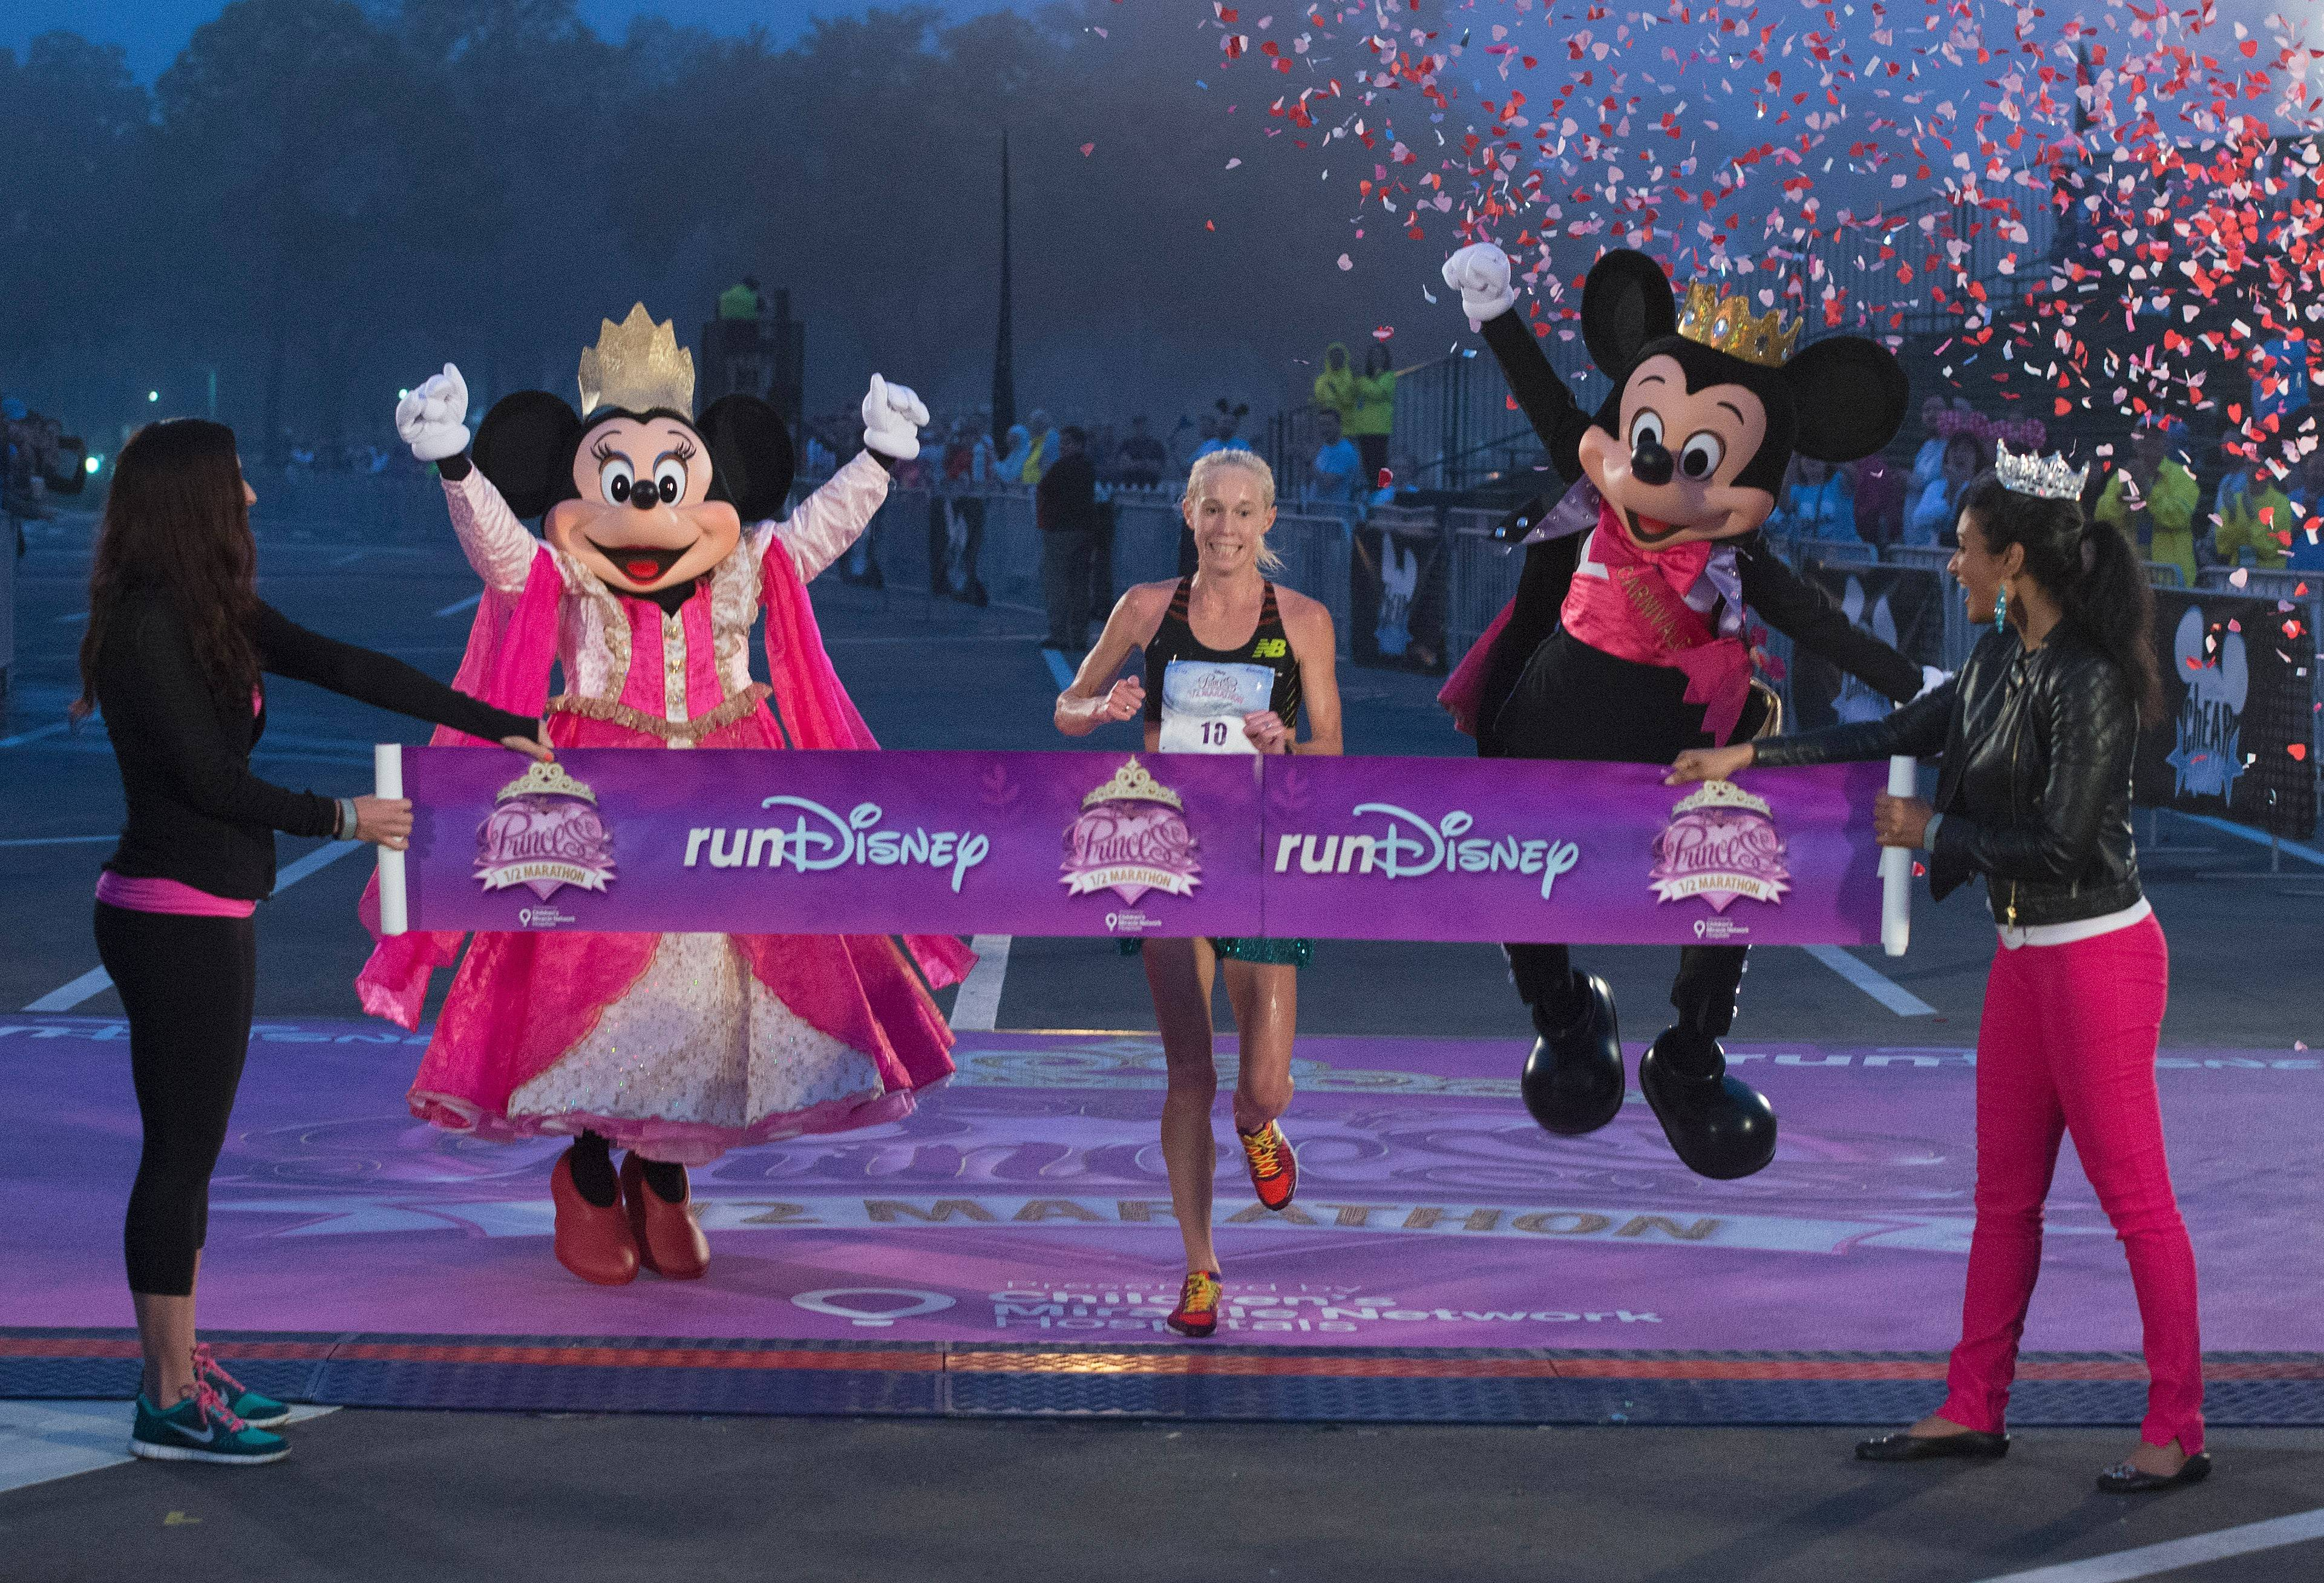 Three-time Olympian Kim Smith, 32, of Providence, R.I., broke the Disney Princess Half Marathon record with a time of 1 hour, 11 minutes and 49 seconds on Feb. 23 at Walt Disney World in Lake Buena Vista, Fla.